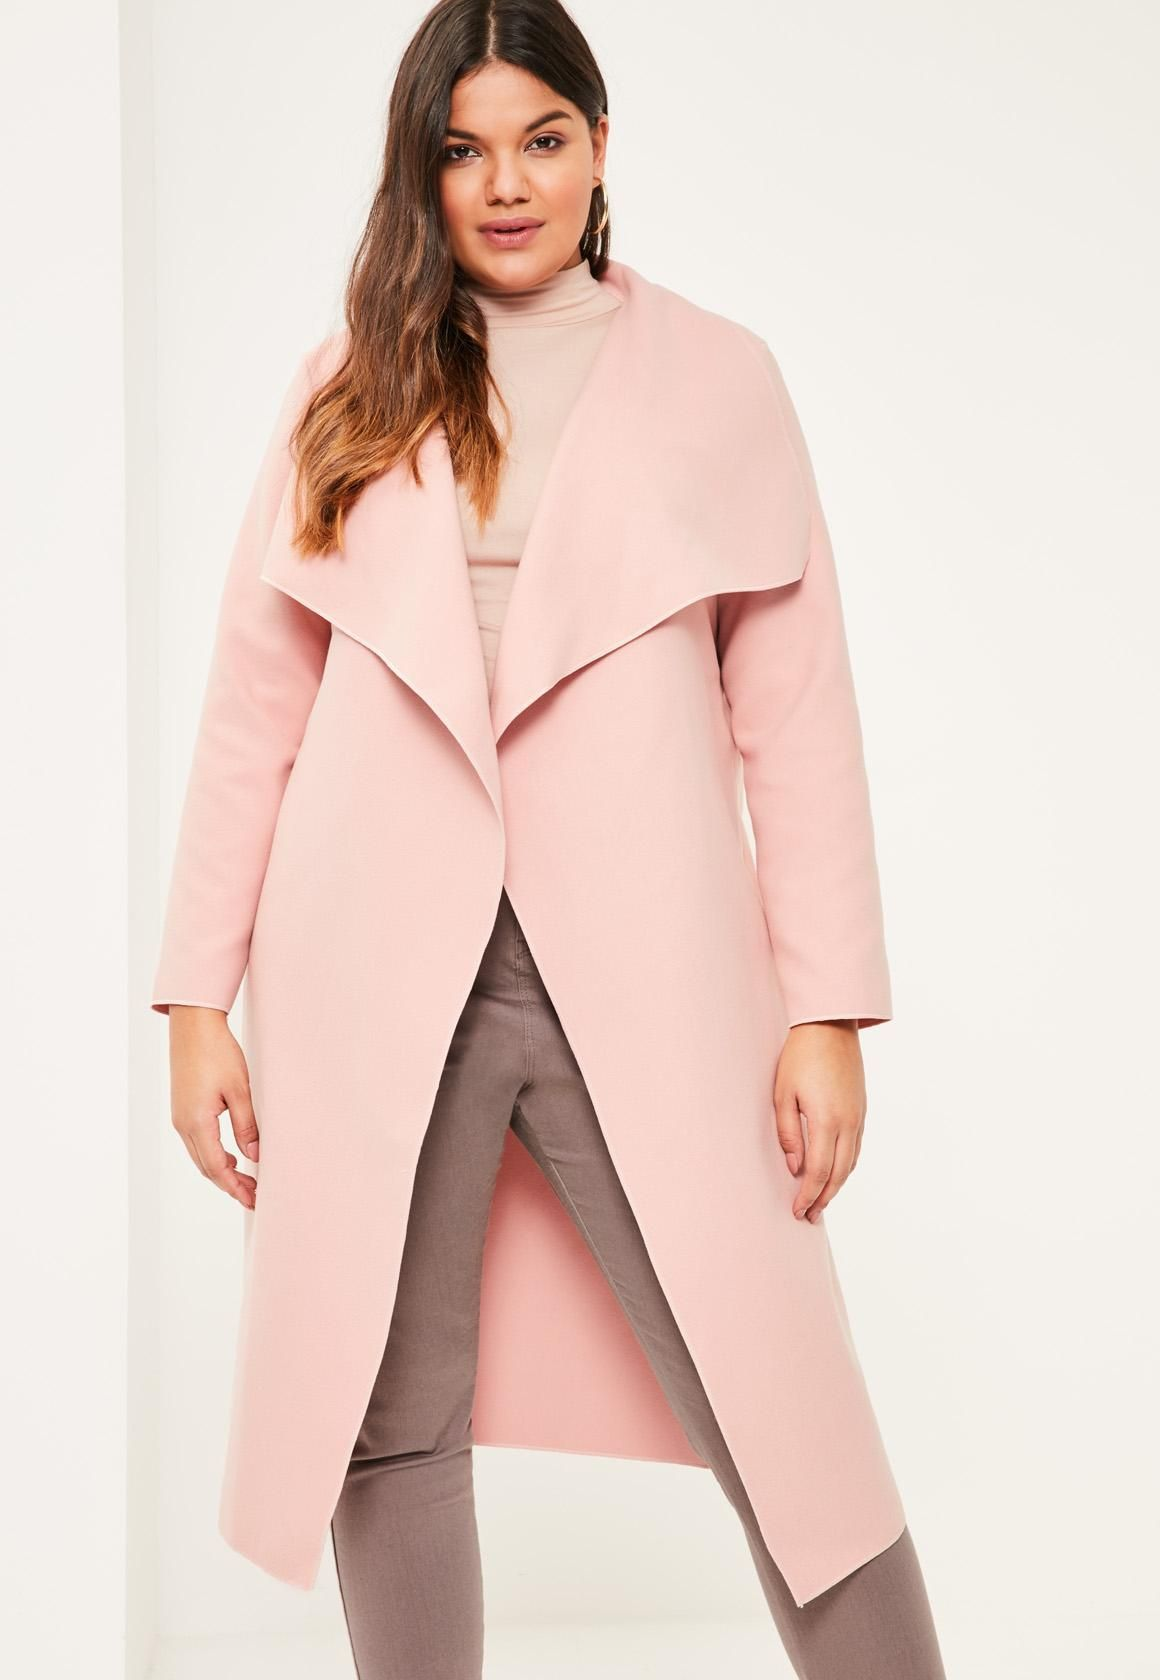 wide selection brand new save up to 80% Missguided - Plus Size Pink Oversized Waterfall Duster Coat ...